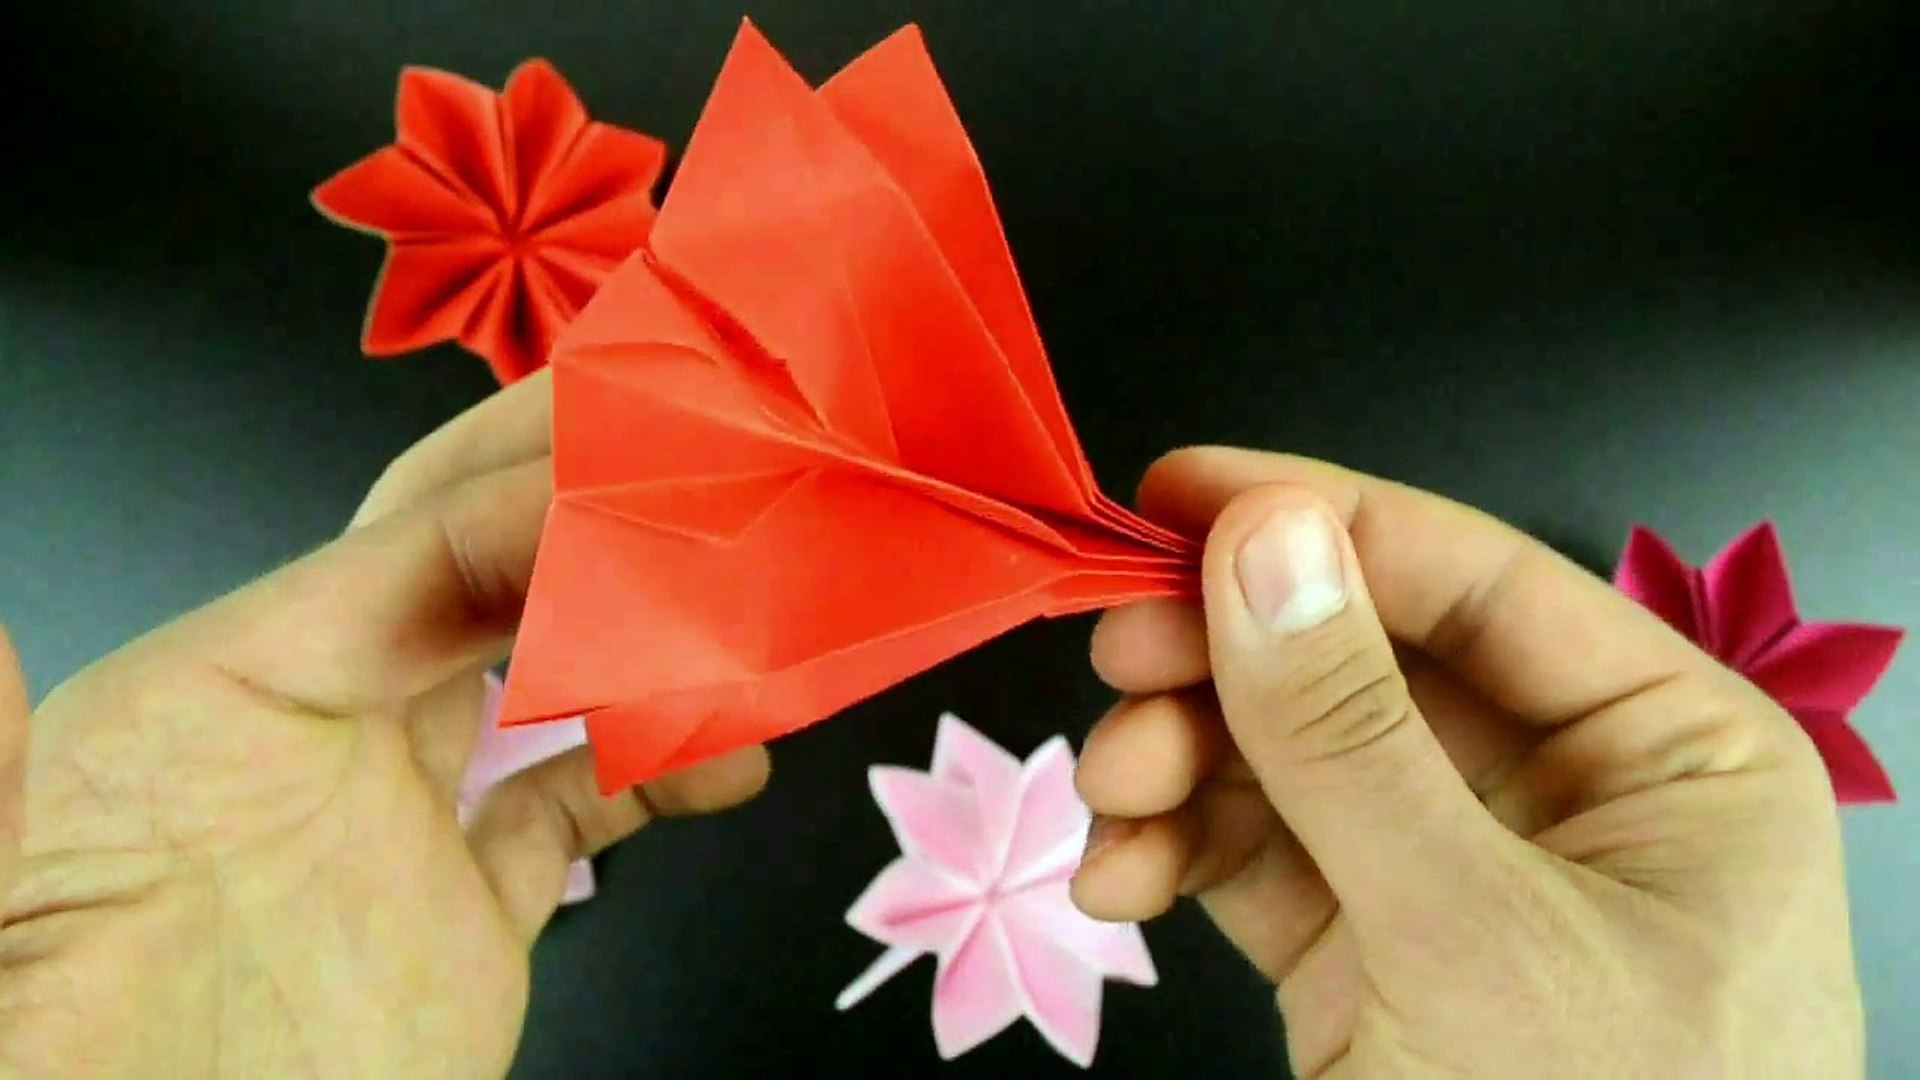 Origami: How to Make a Lotus Flower - video dailymotion | 1080x1920